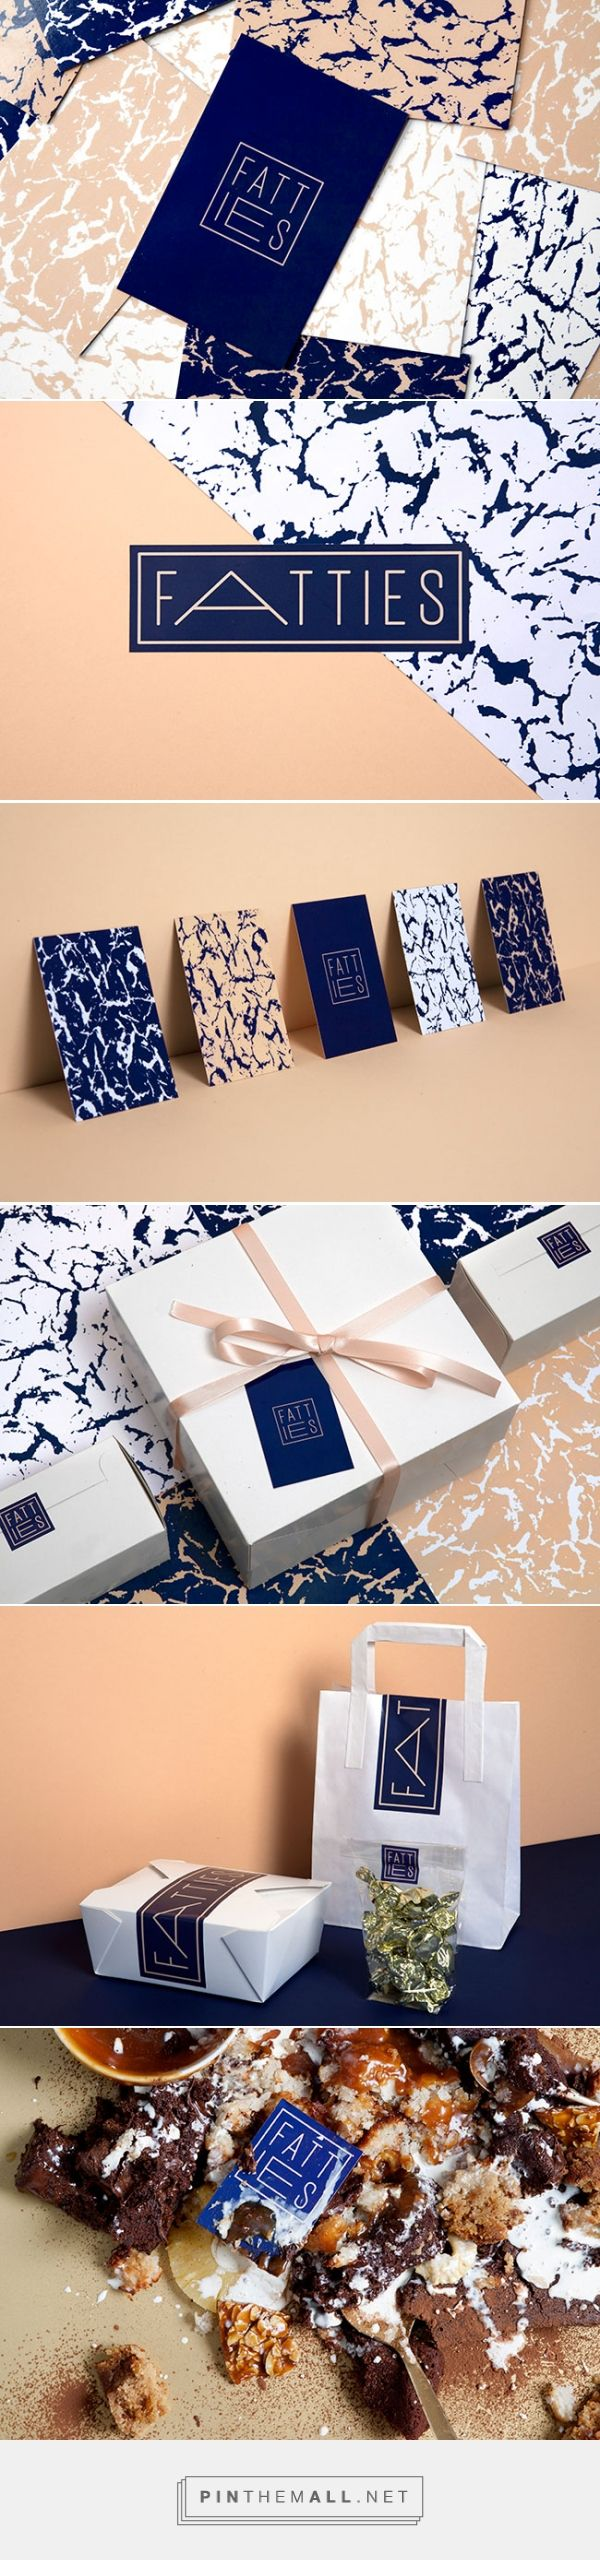 Fatties packaging branding by Identity Designed curated by Packaging Diva PD. Yumm who want's to go to Fatties right now : )